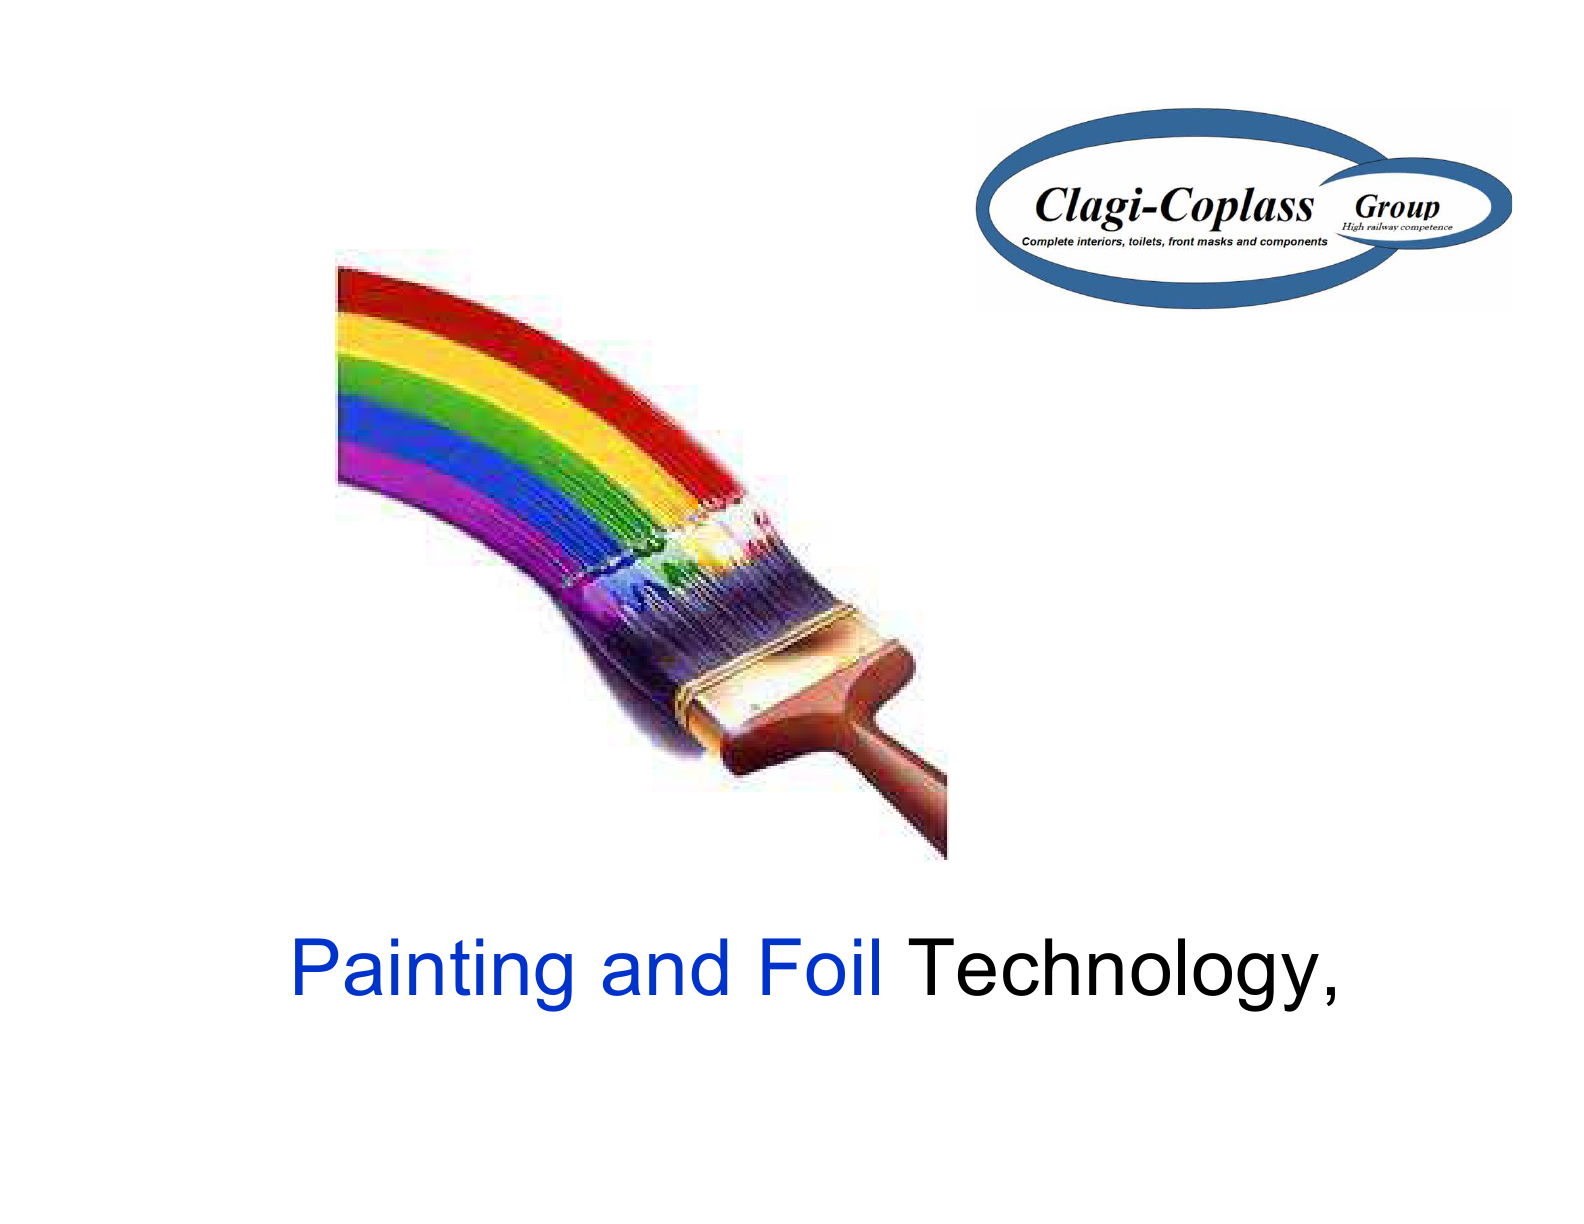 Paint_and_Foil_Technology